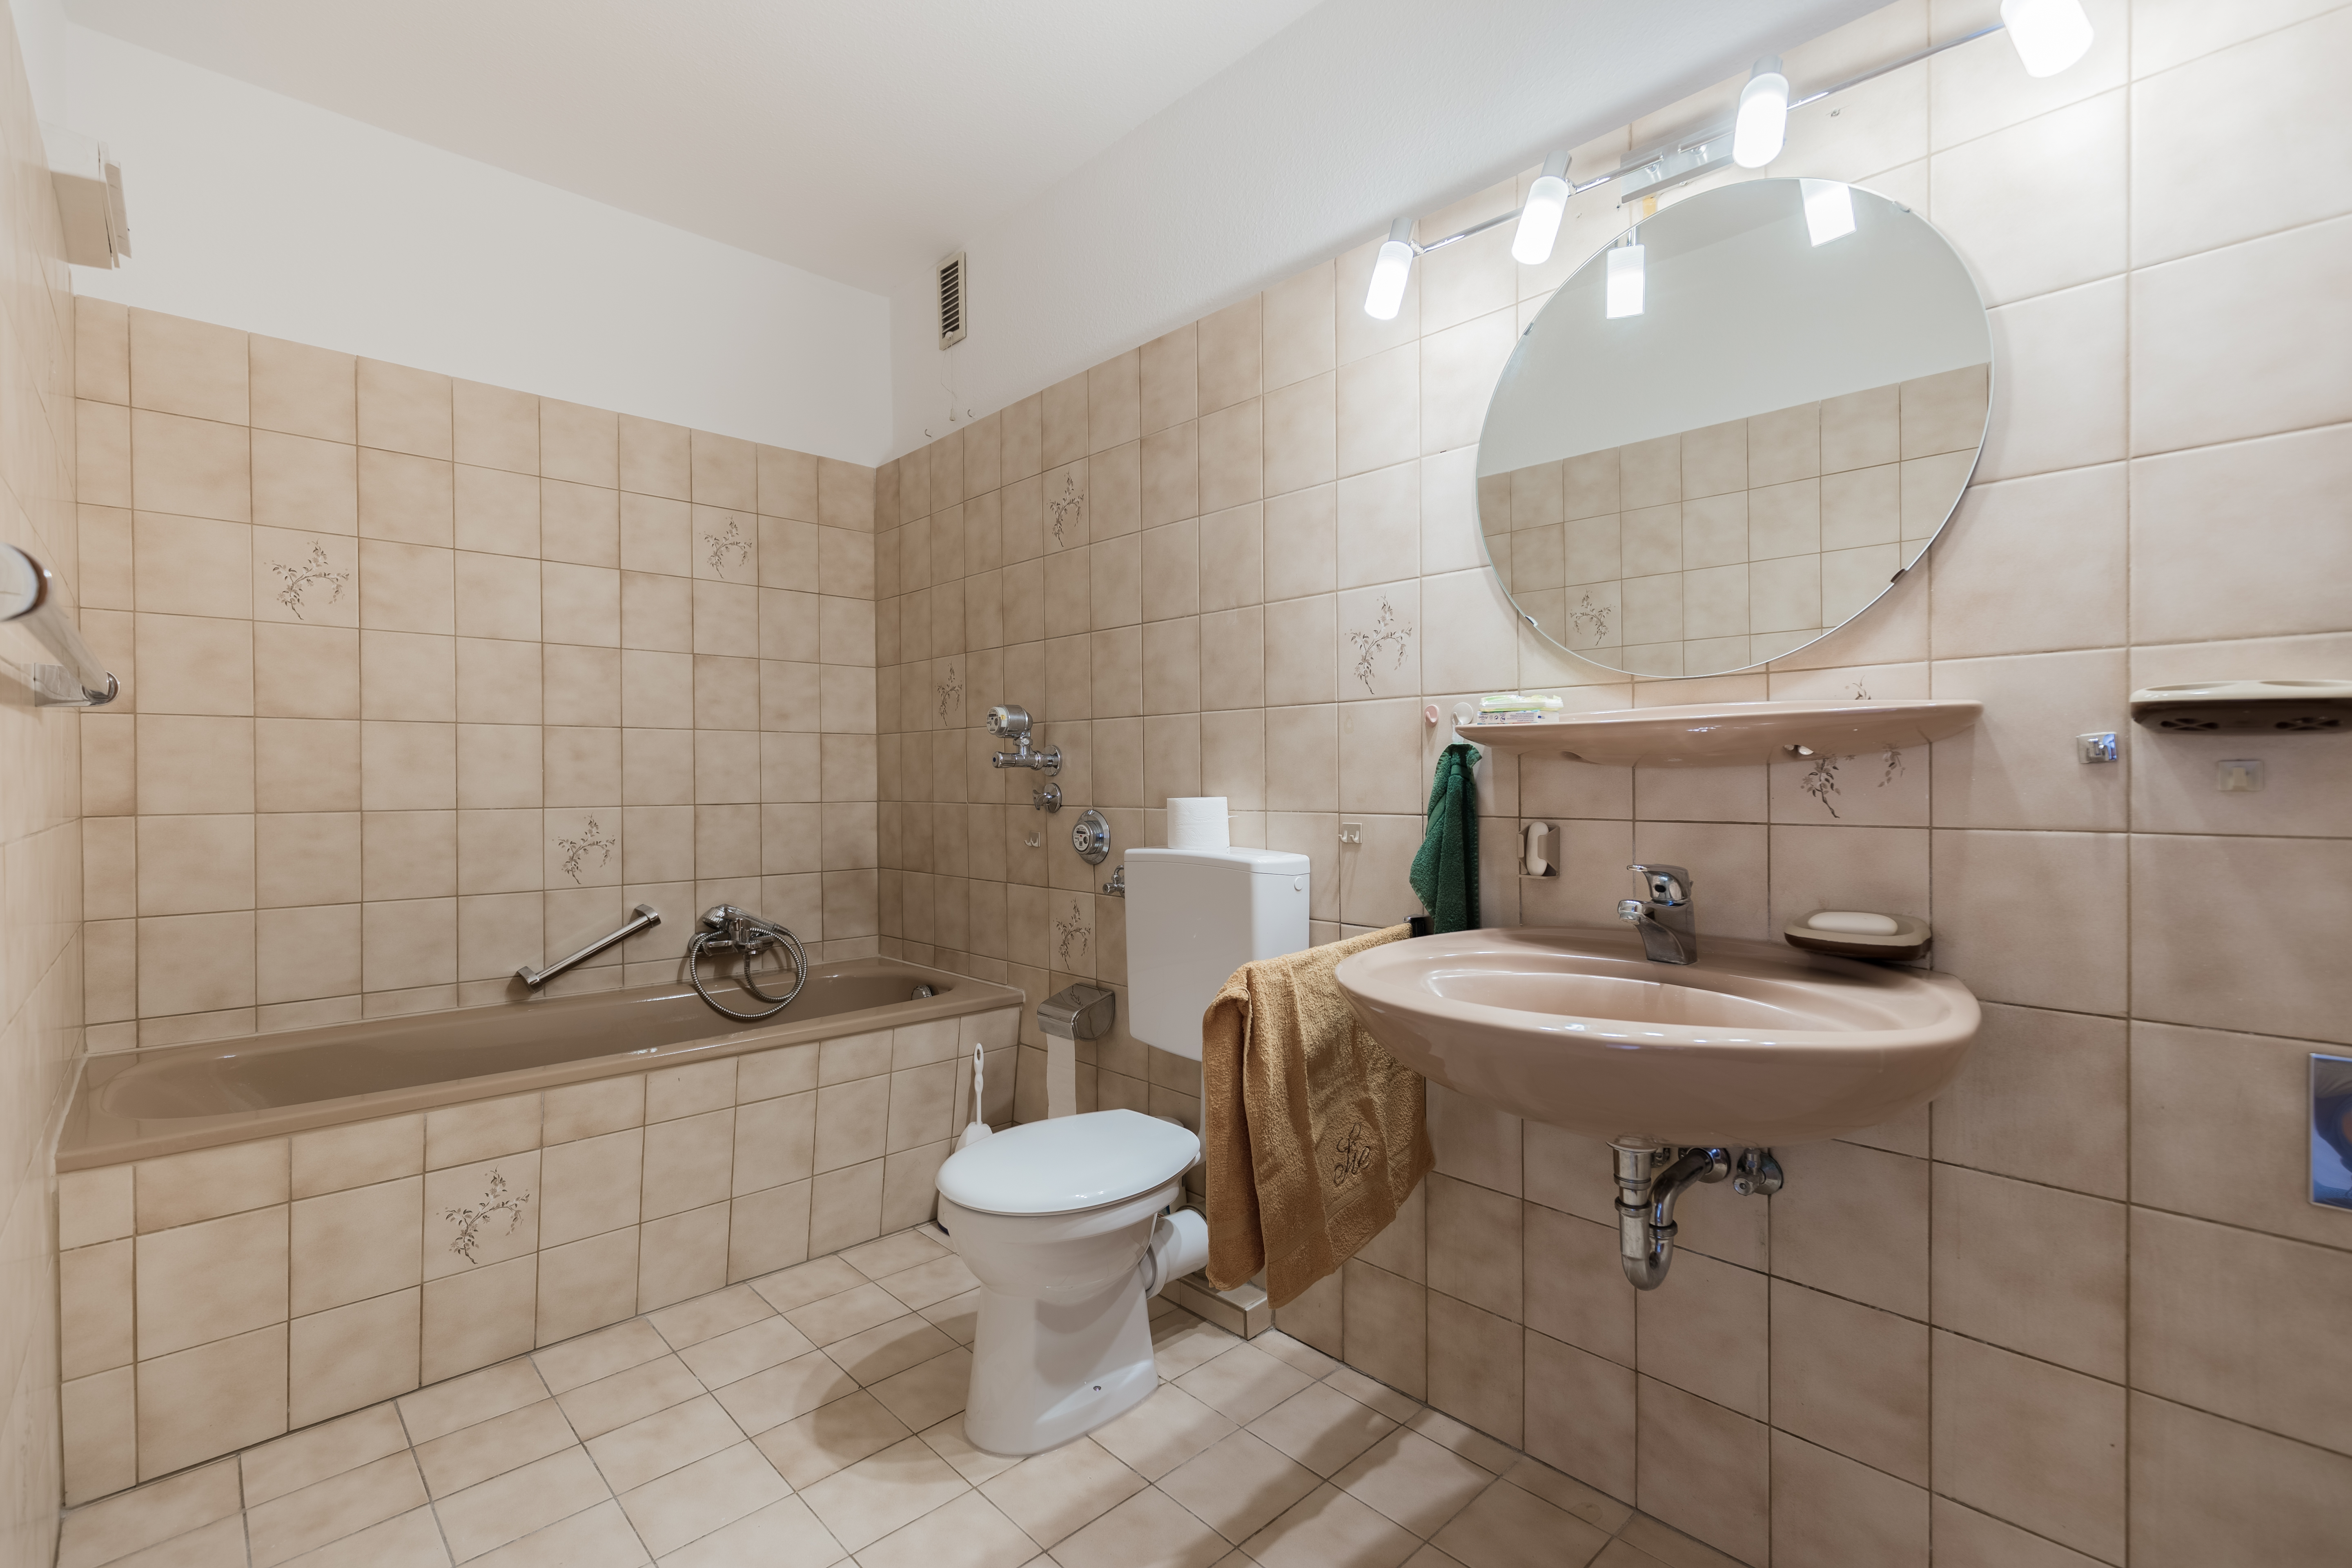 How To Install Bathroom Tile In Corners